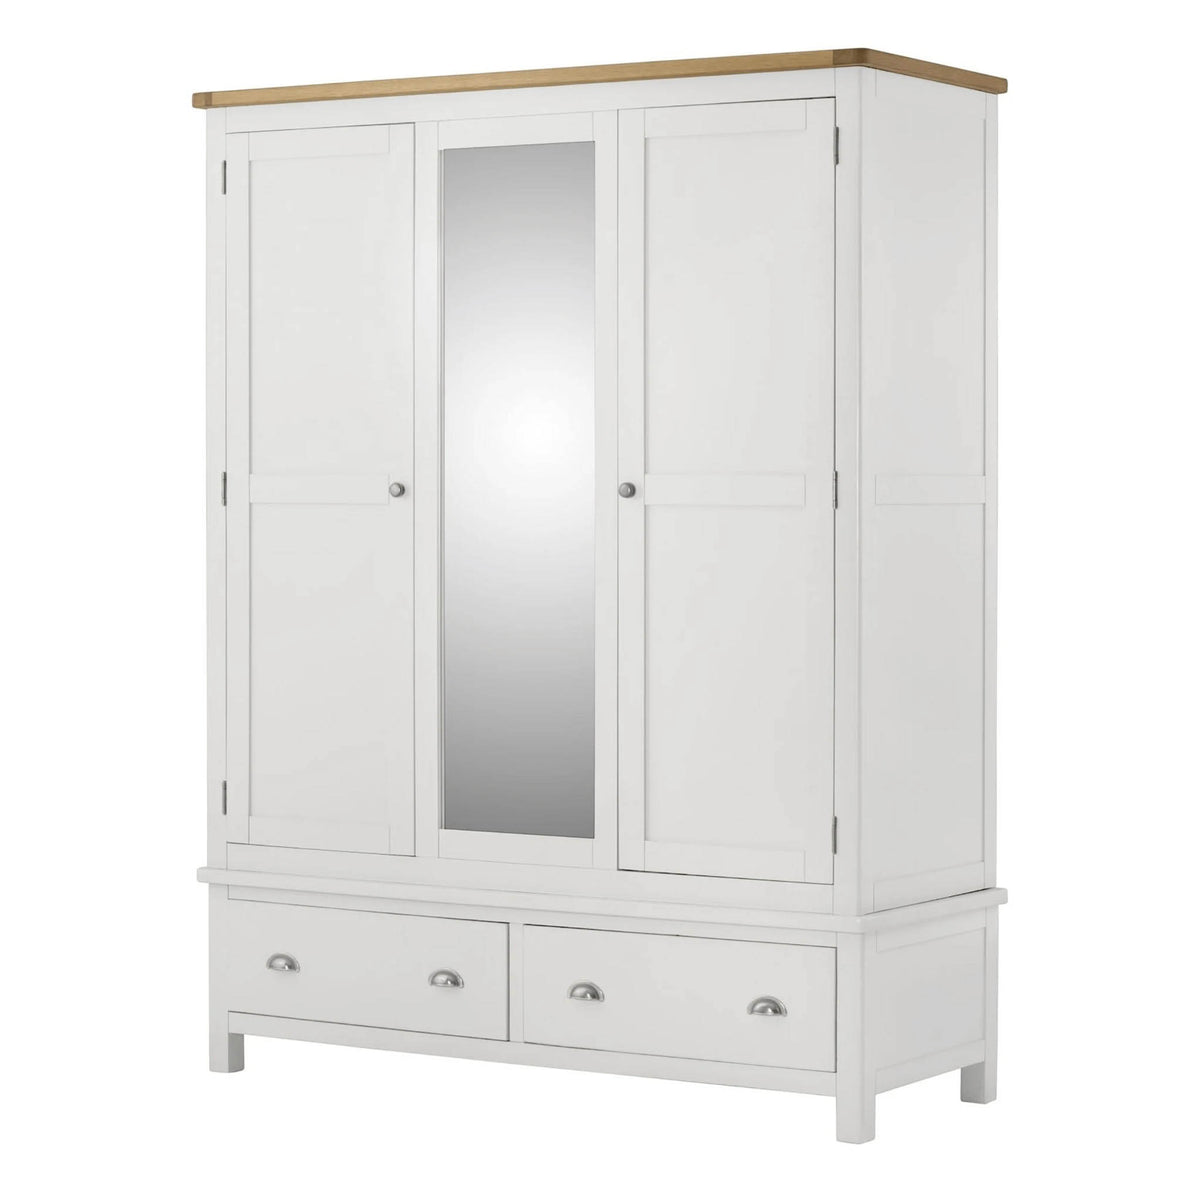 The Padstow White Large Wooden Triple Wardrobe with Mirror from Roseland Furniture